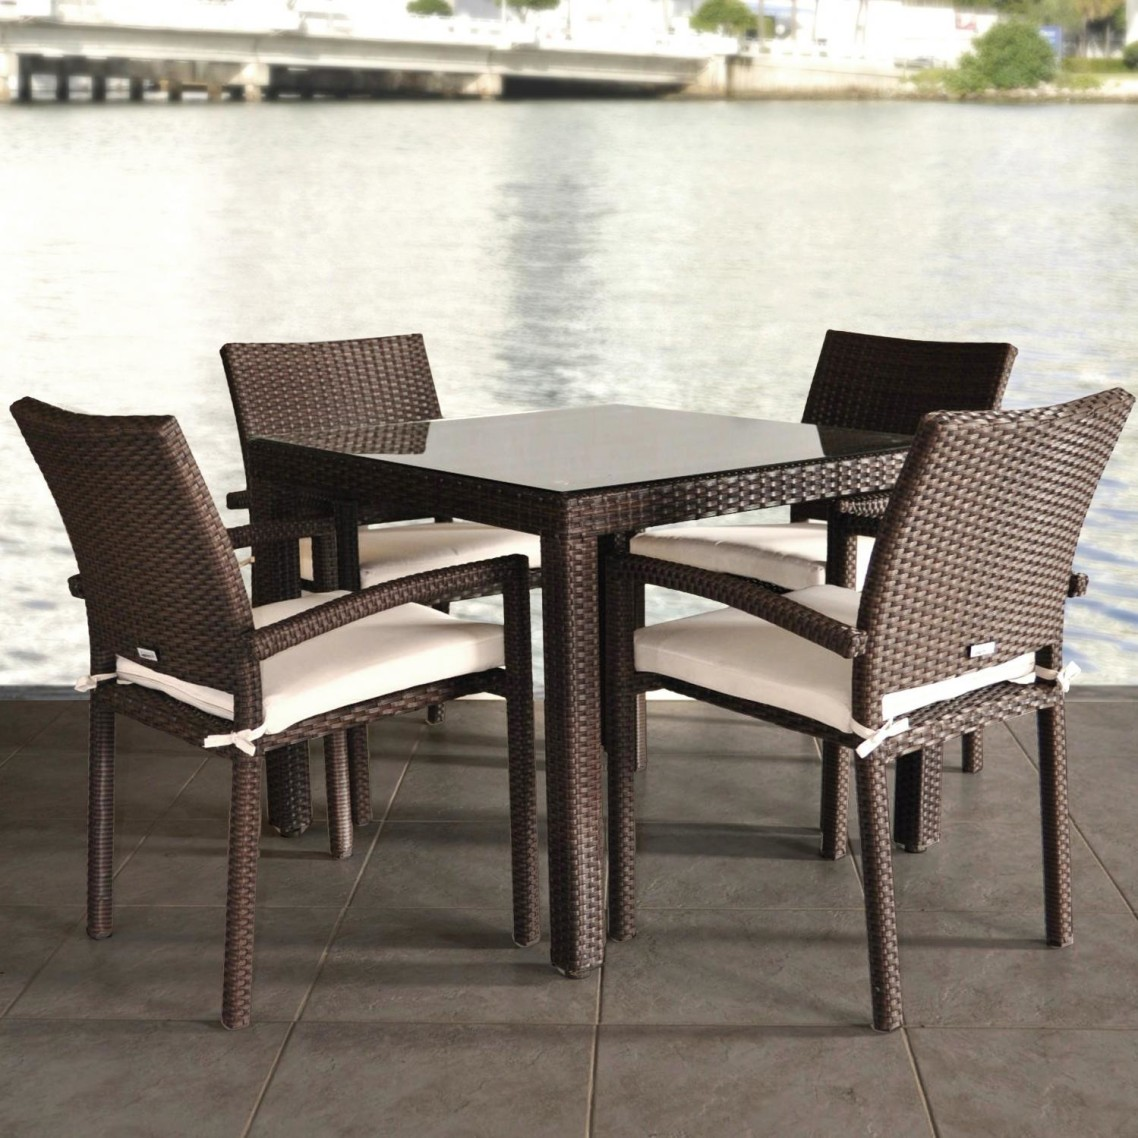 Image of: dark wicker dining chairs